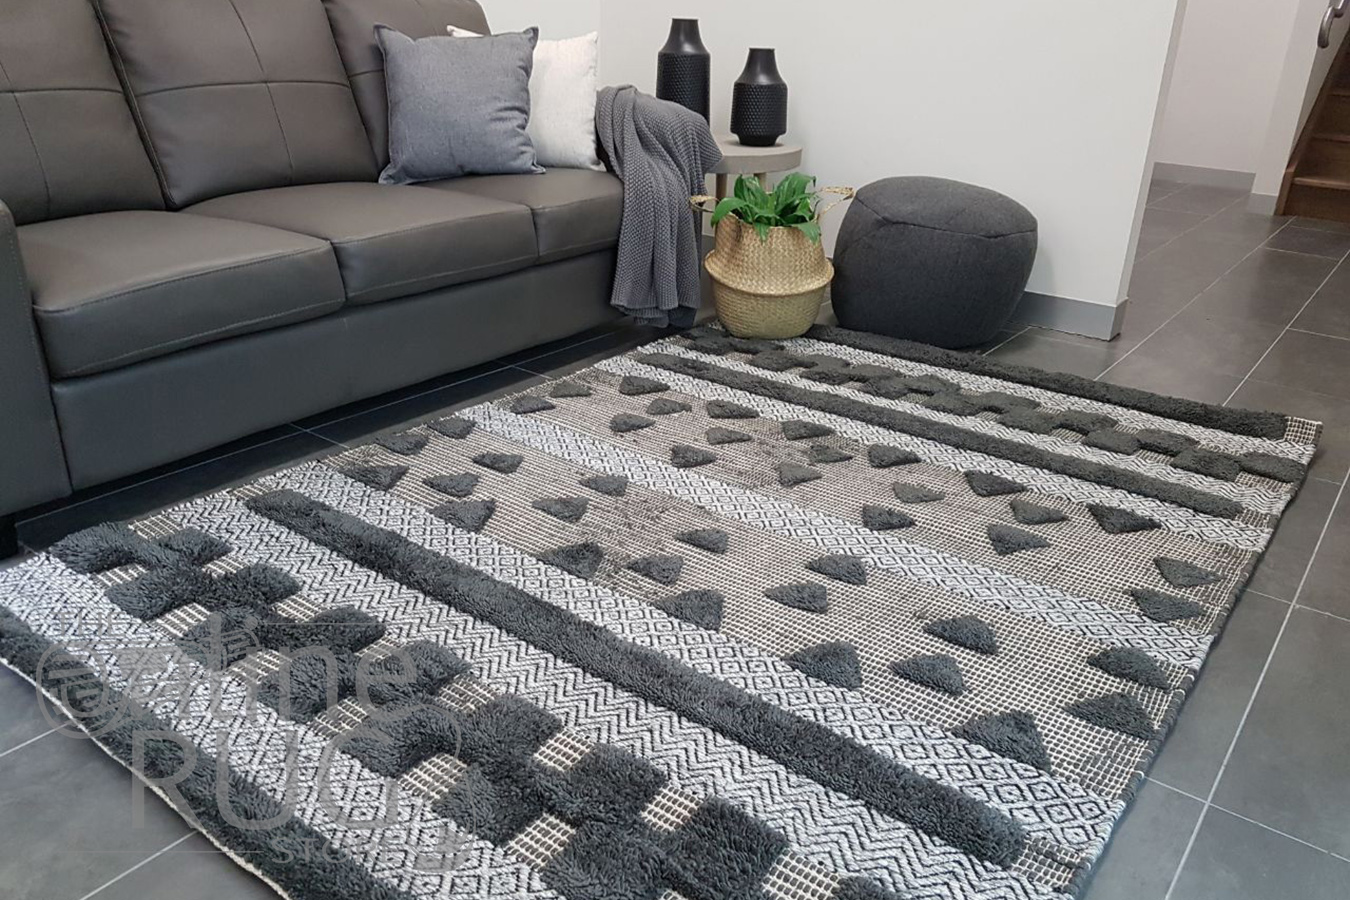 Bohemian Charcoal Hand Loomed Textured Rug The Online